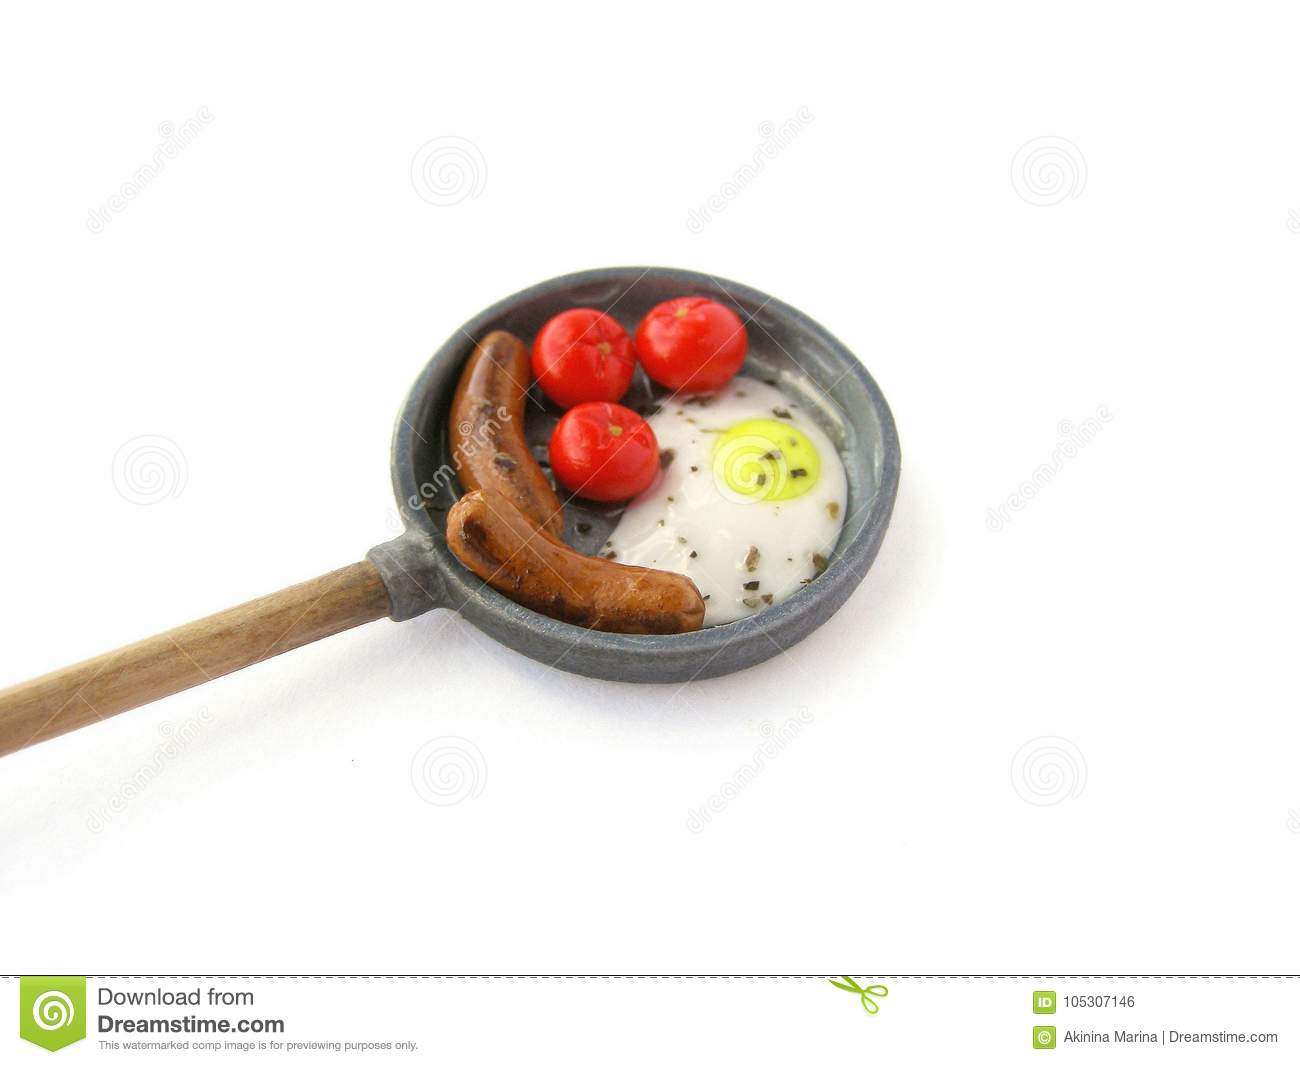 Photo Miniature fake Frying pan with fried egg, tomatoes and sausages on white background. Dollhouse miniature, polymer clay toy,